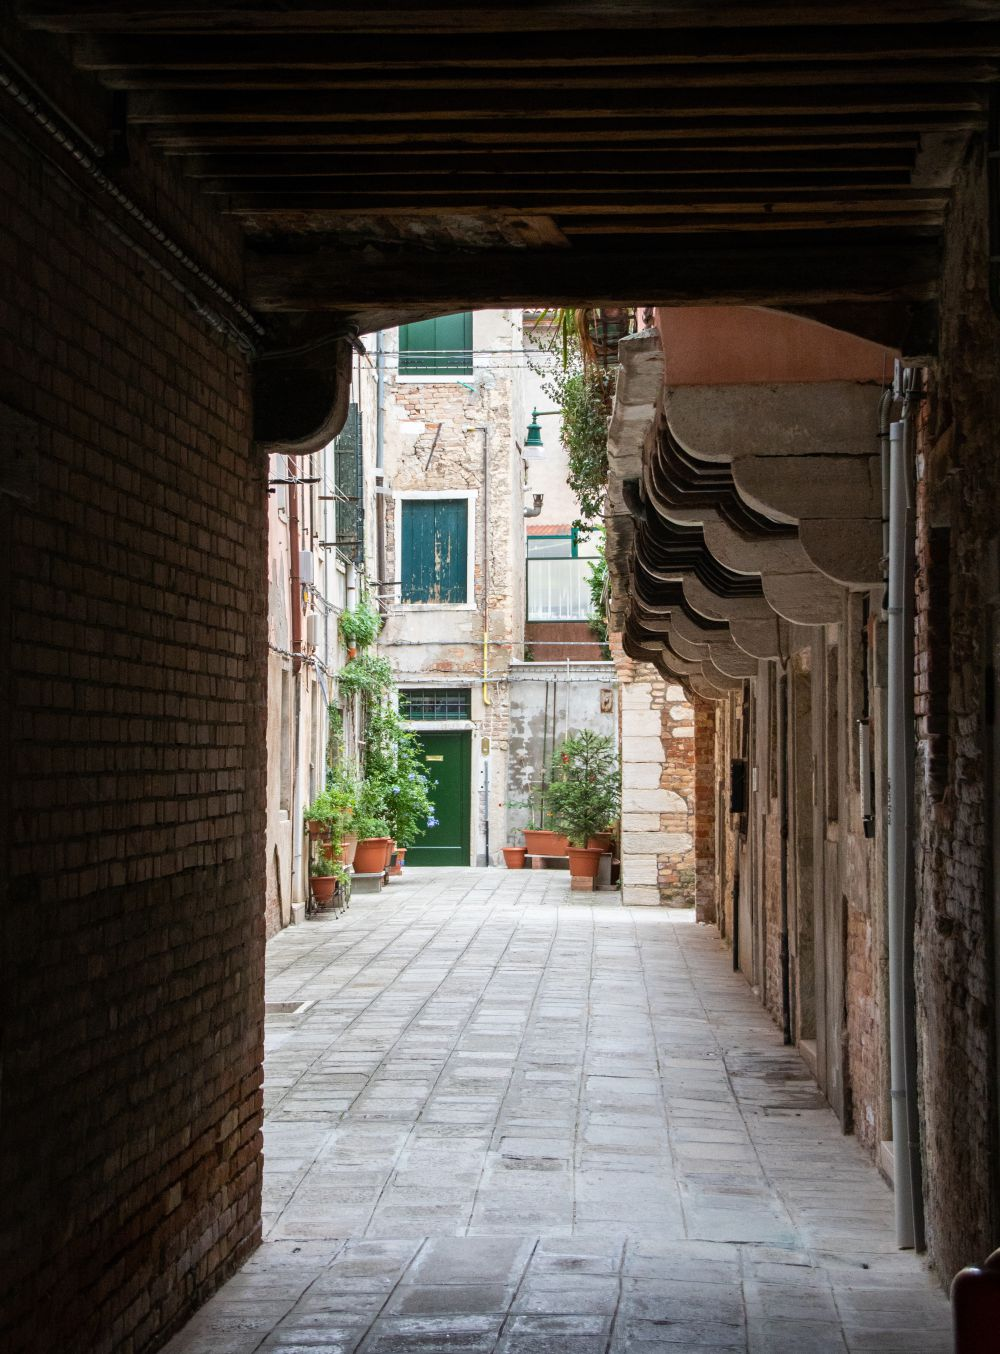 Streets in Venice Italy